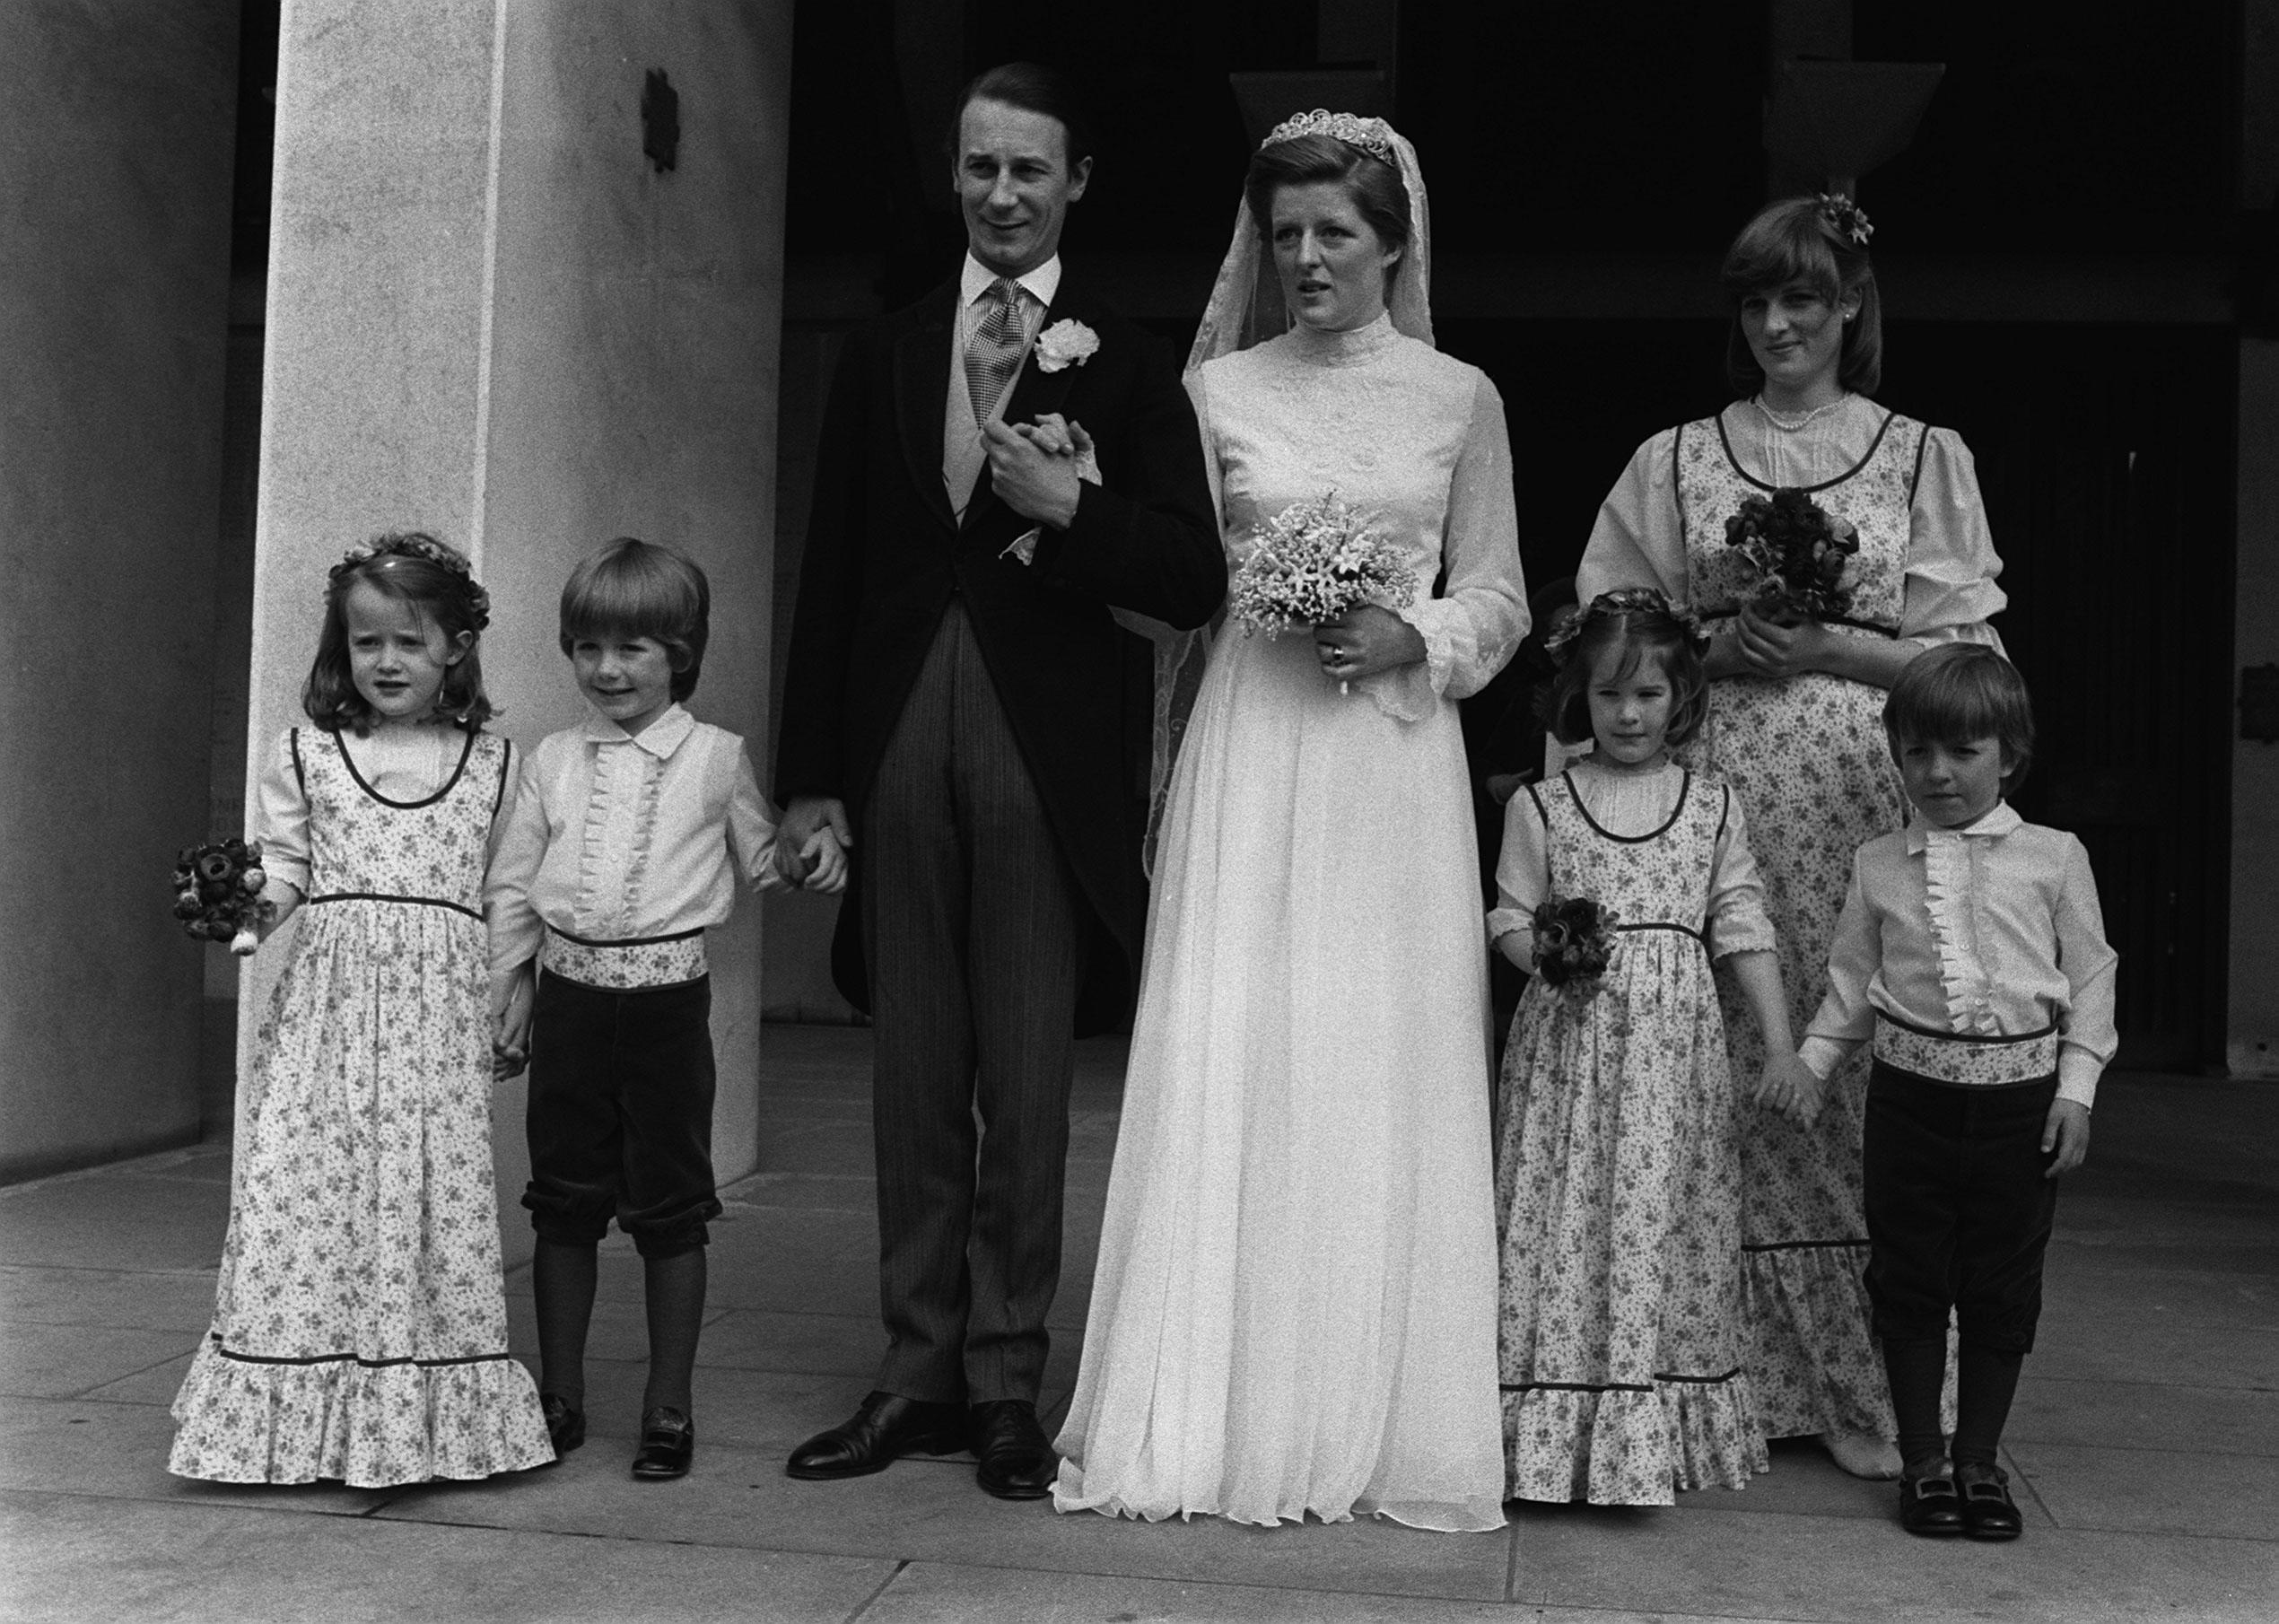 Lady Jane Fellowes married Robert Fellowes in 1978. Her sister, Princess Diana (right), served as a bridesmaid.